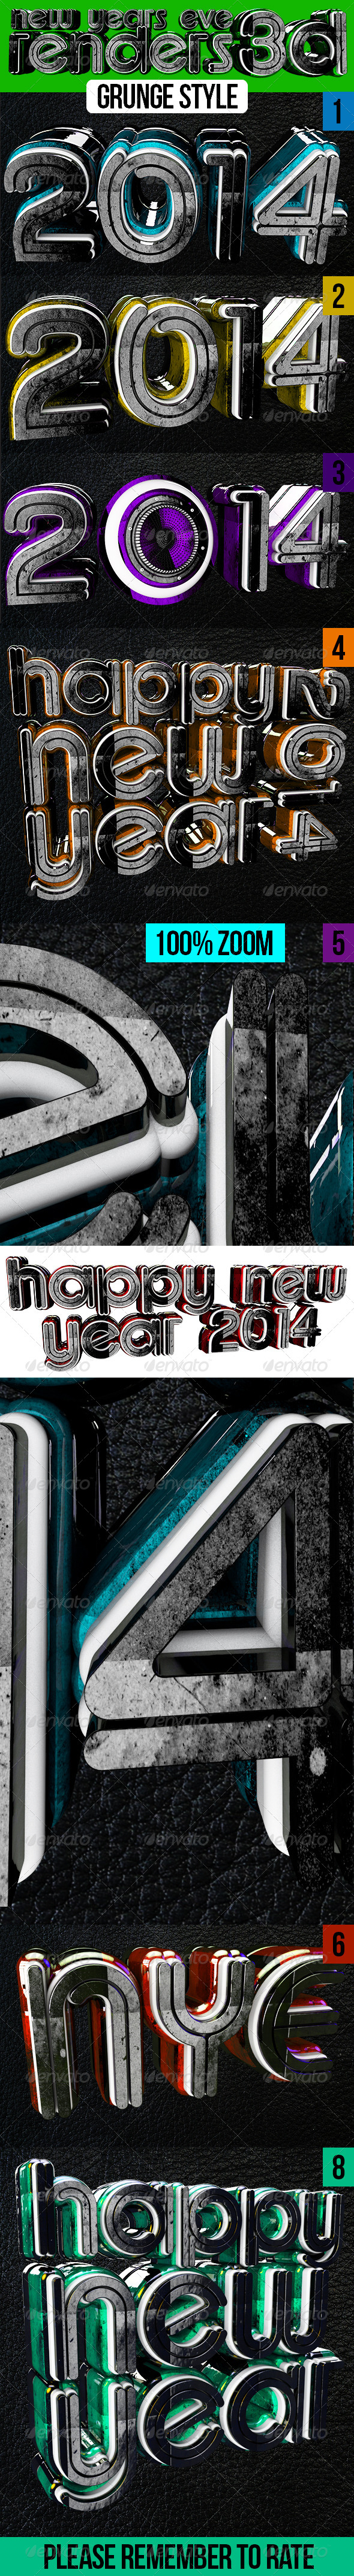 New Year Eve 3d Renders - Text 3D Renders